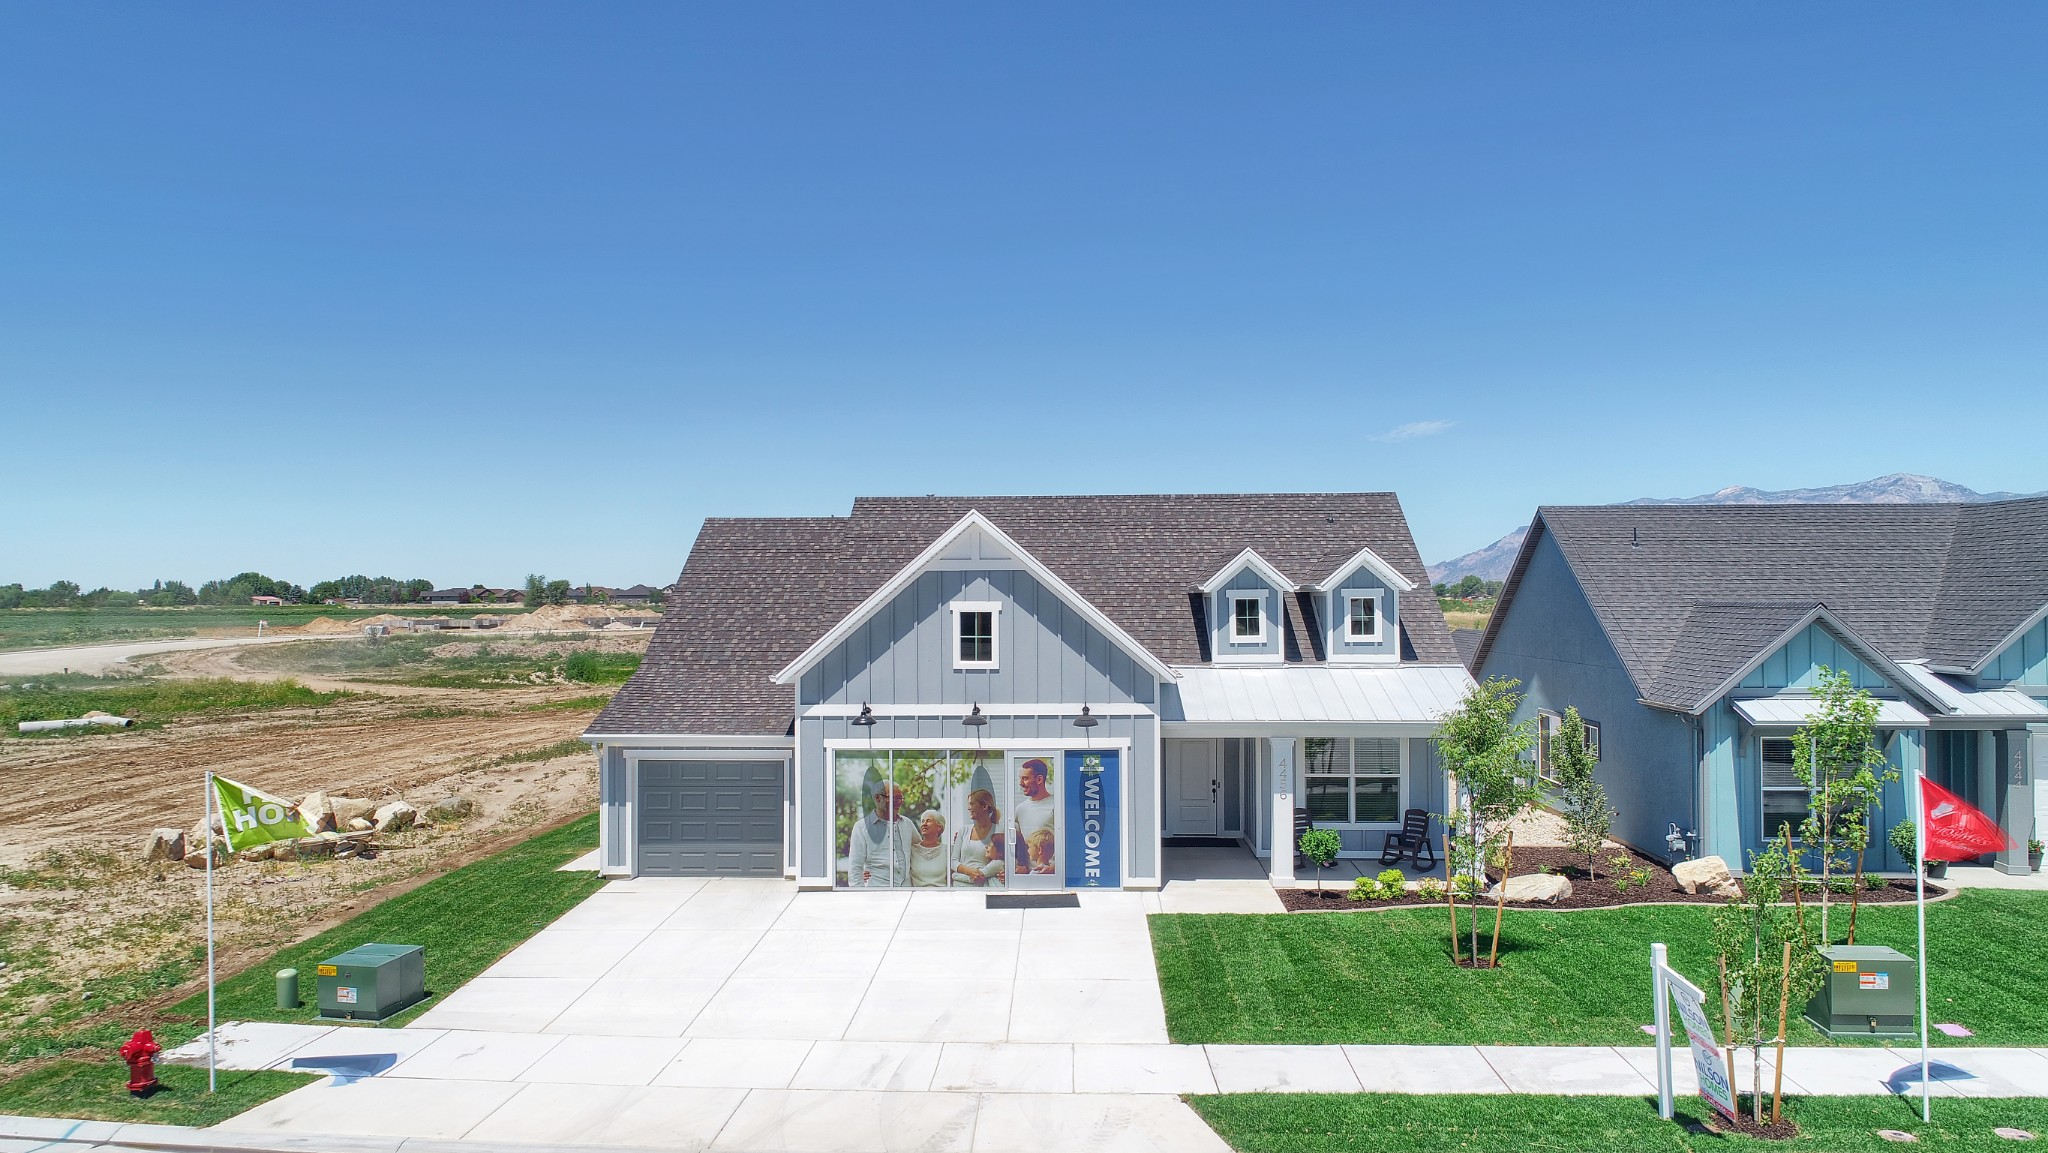 4456 w 3800 s new home in west haven